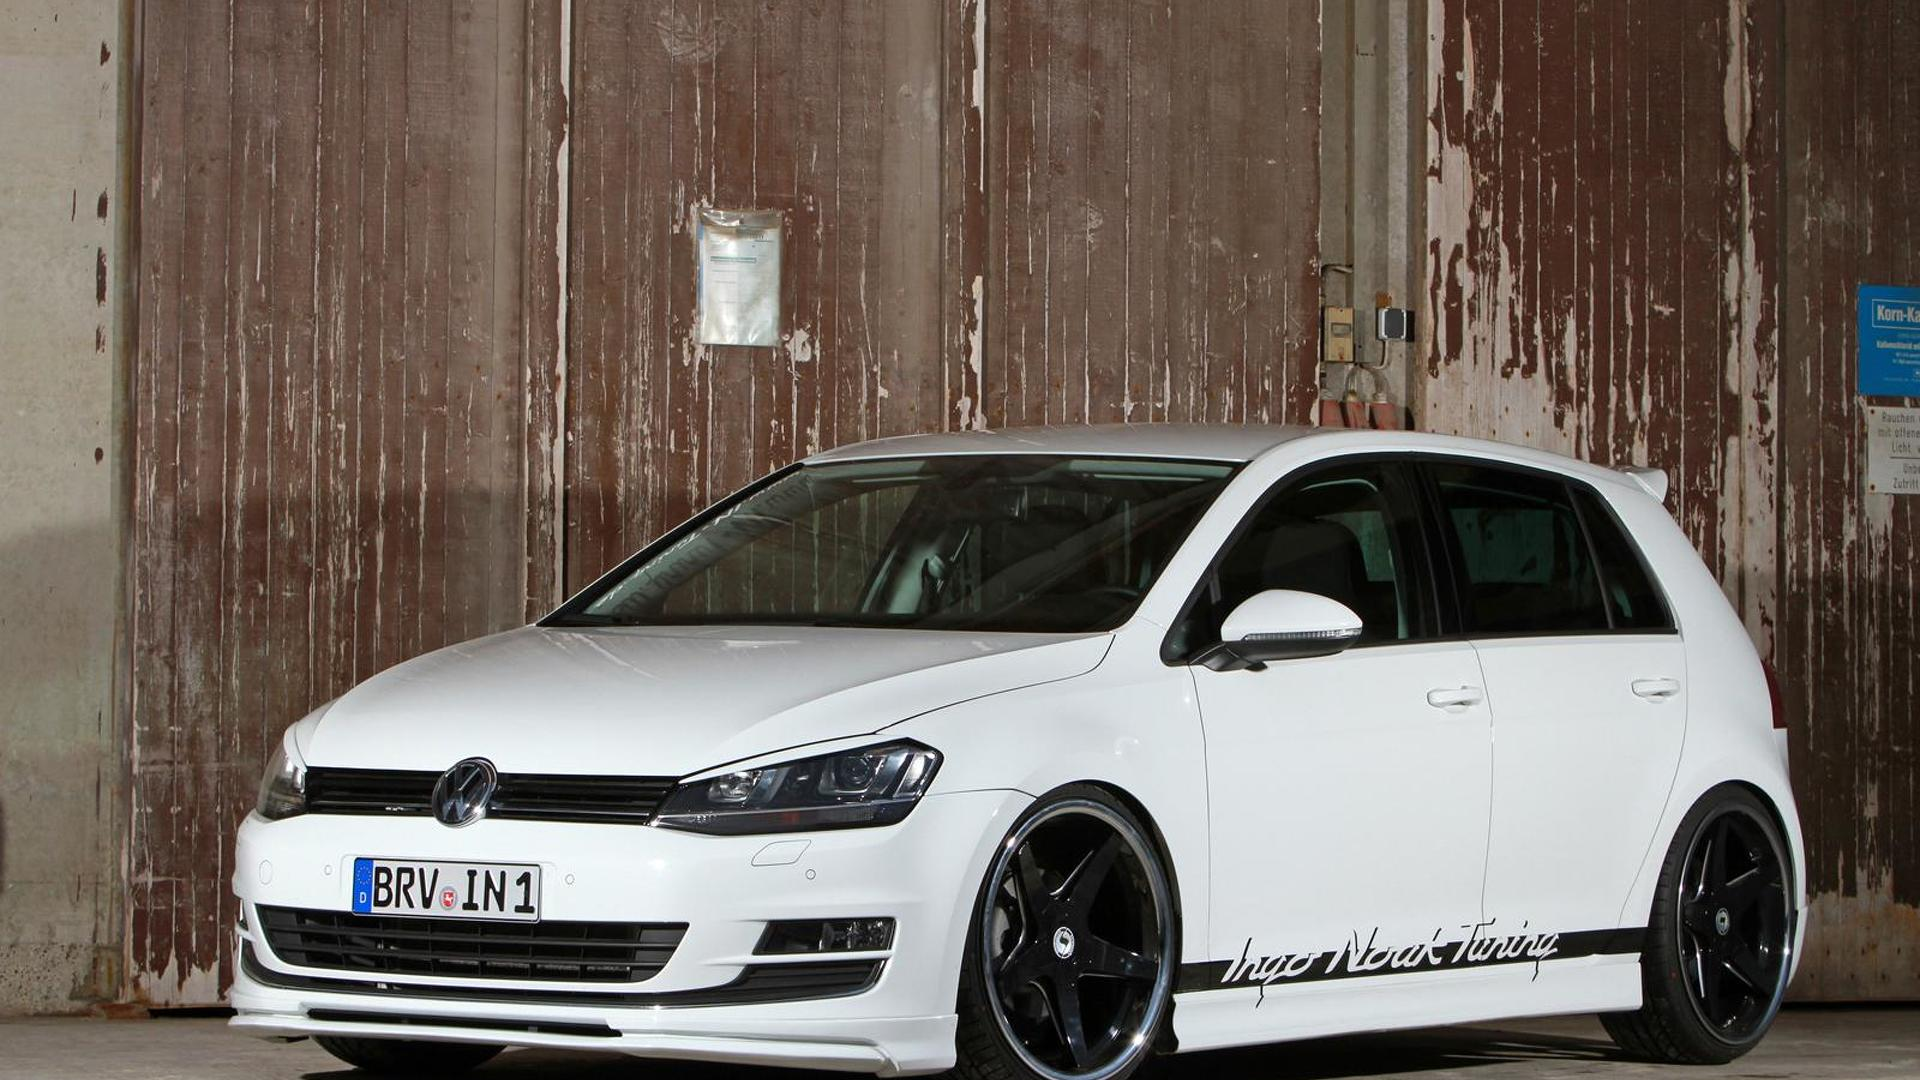 volkswagen golf vii 1 4 tsi modified by ingo noak tuning. Black Bedroom Furniture Sets. Home Design Ideas